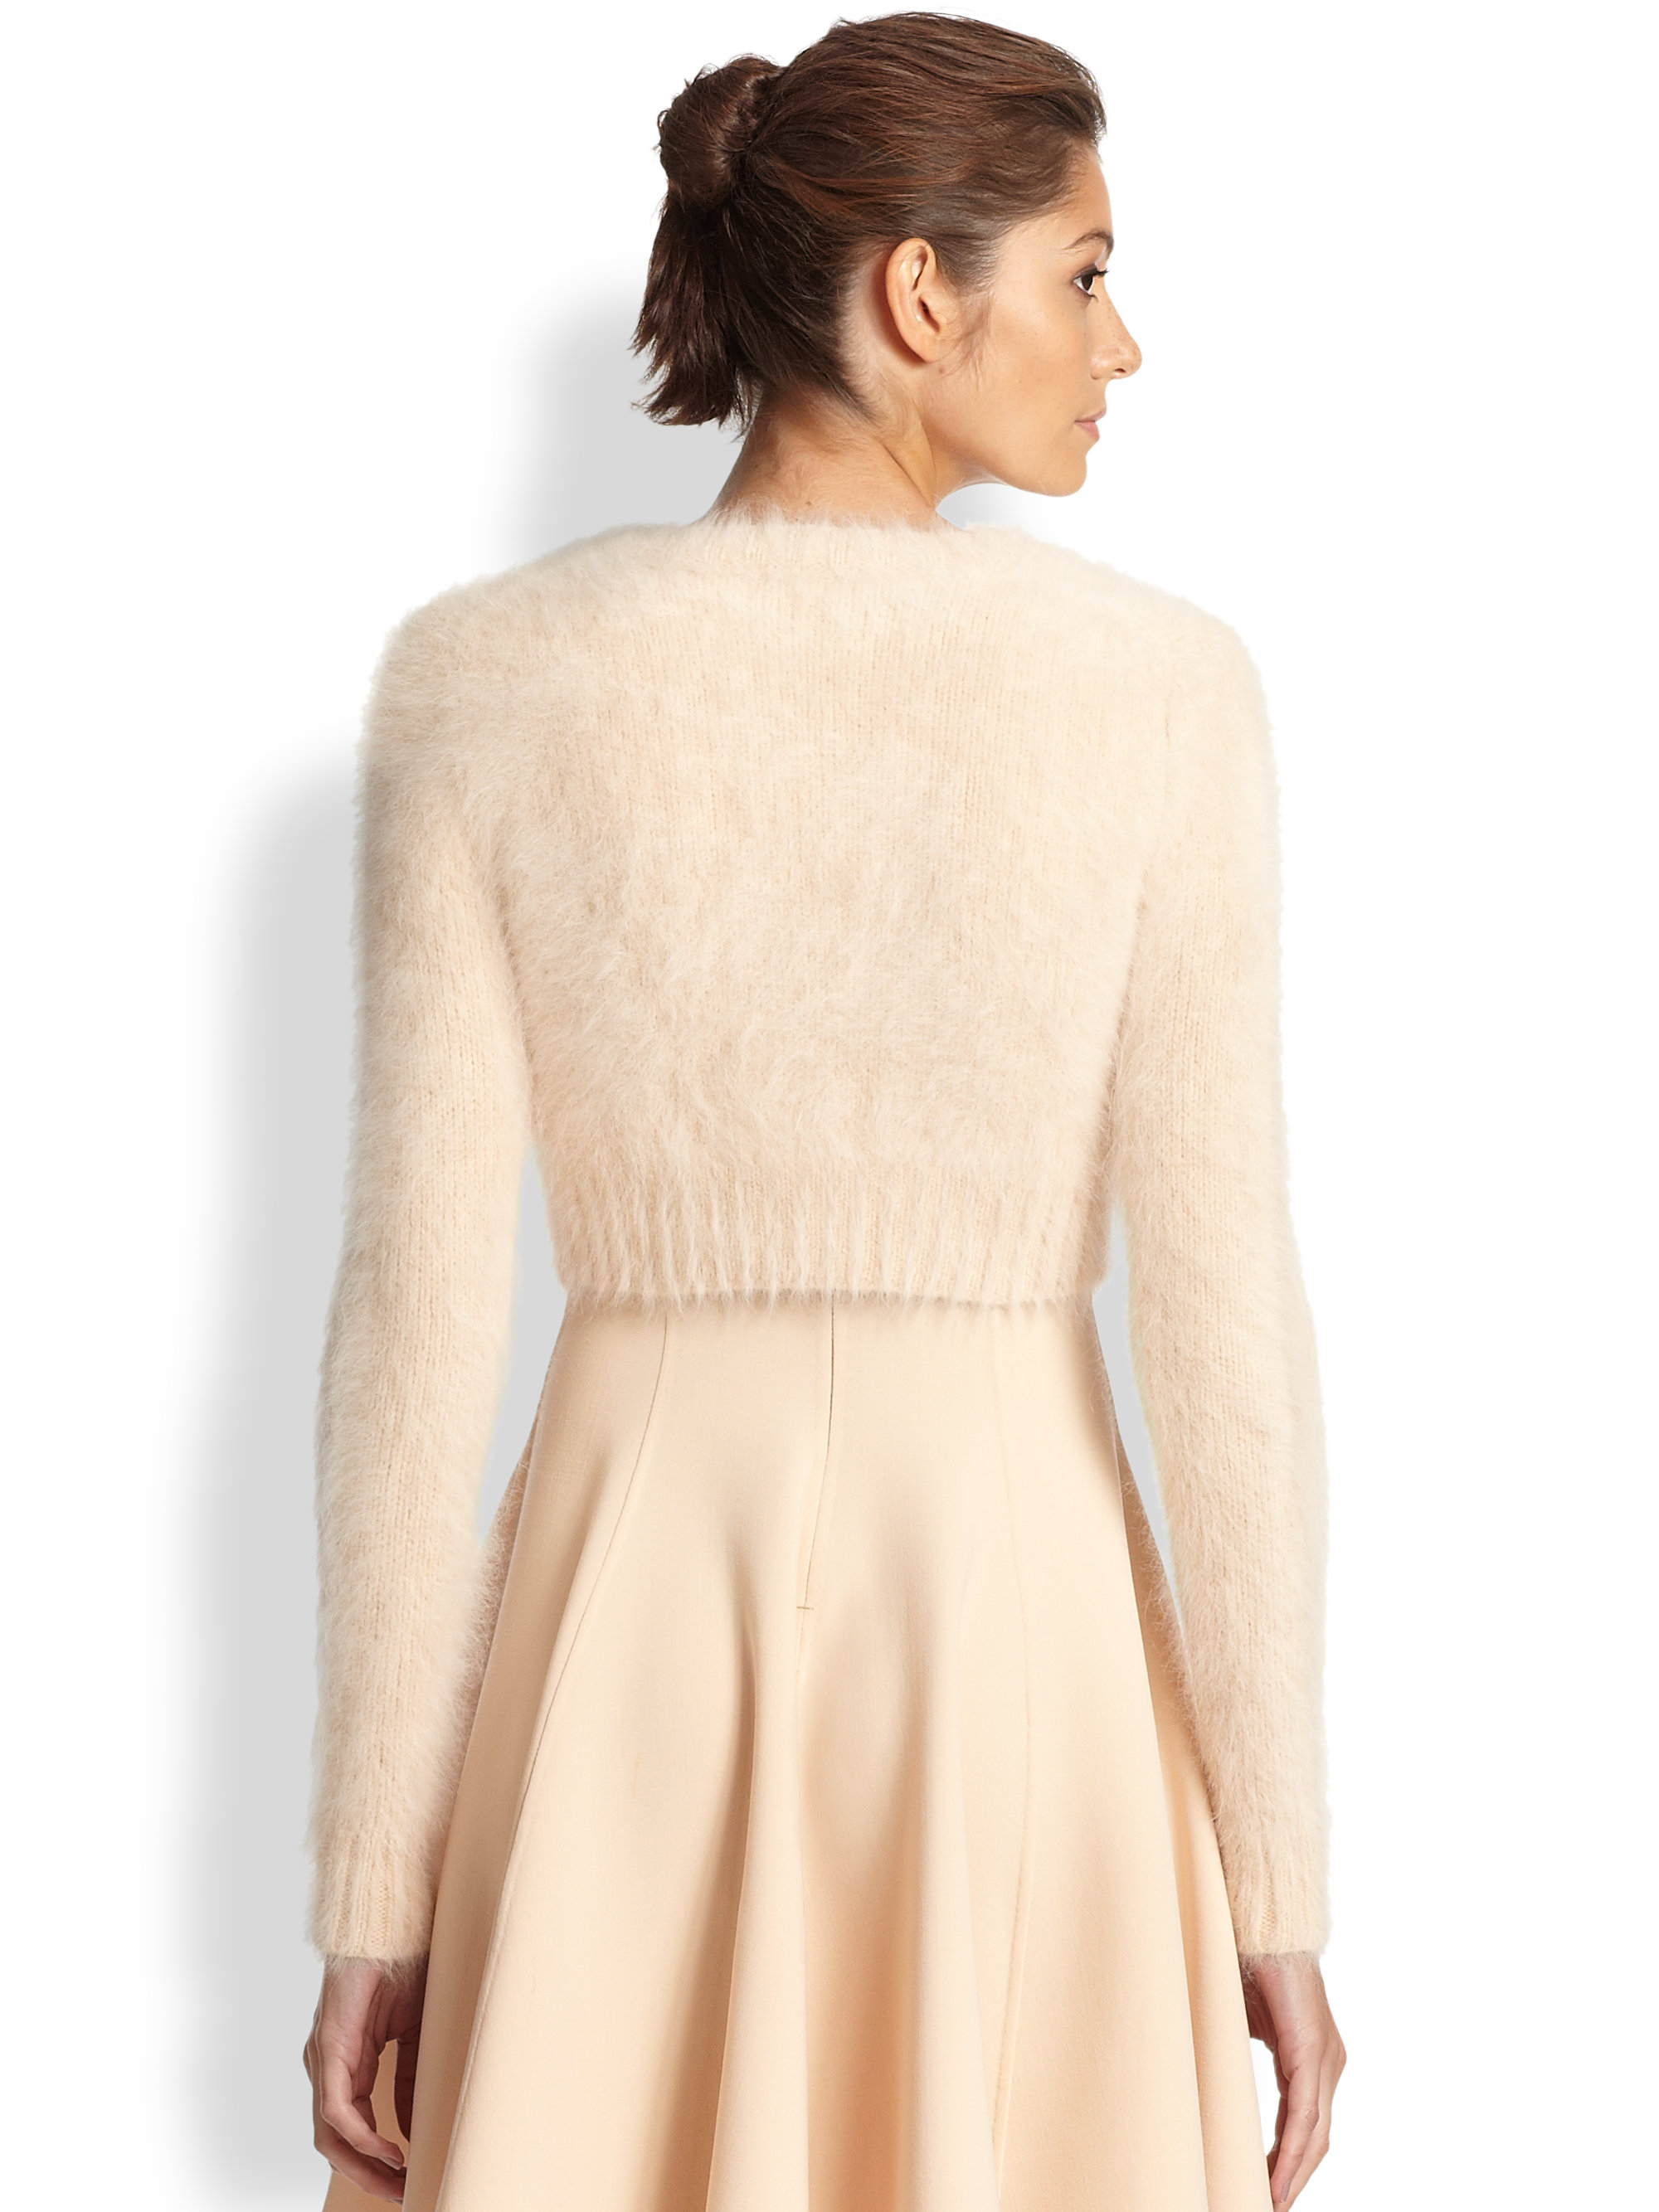 Michael kors Cropped Angora Cardigan in Natural | Lyst